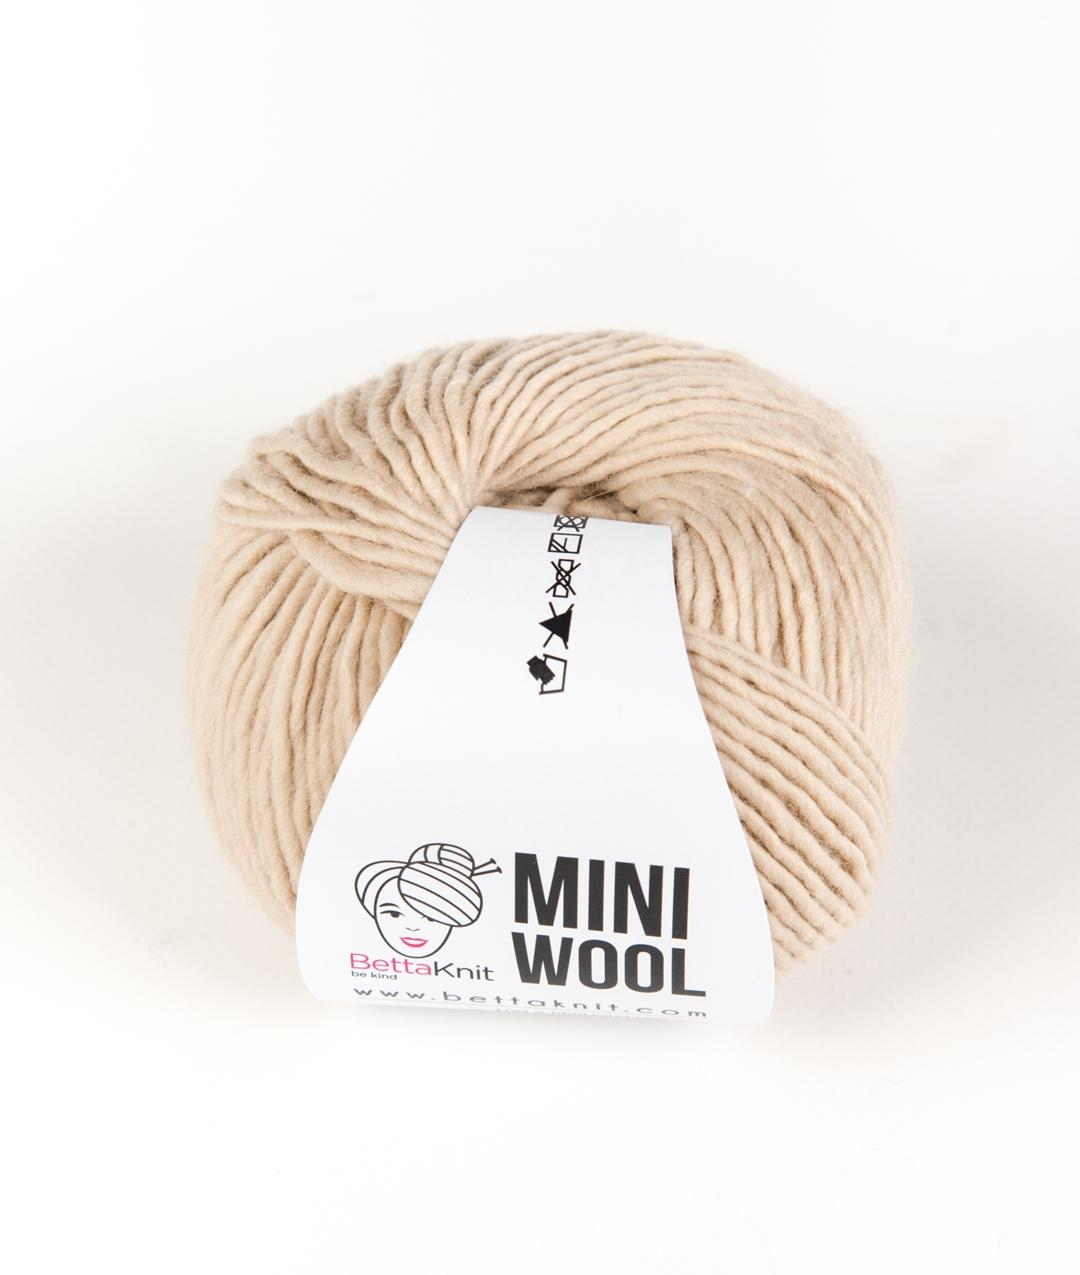 Yarns - Yarn pack without Needles  - Mini Wool Pack - 10 balls - 1